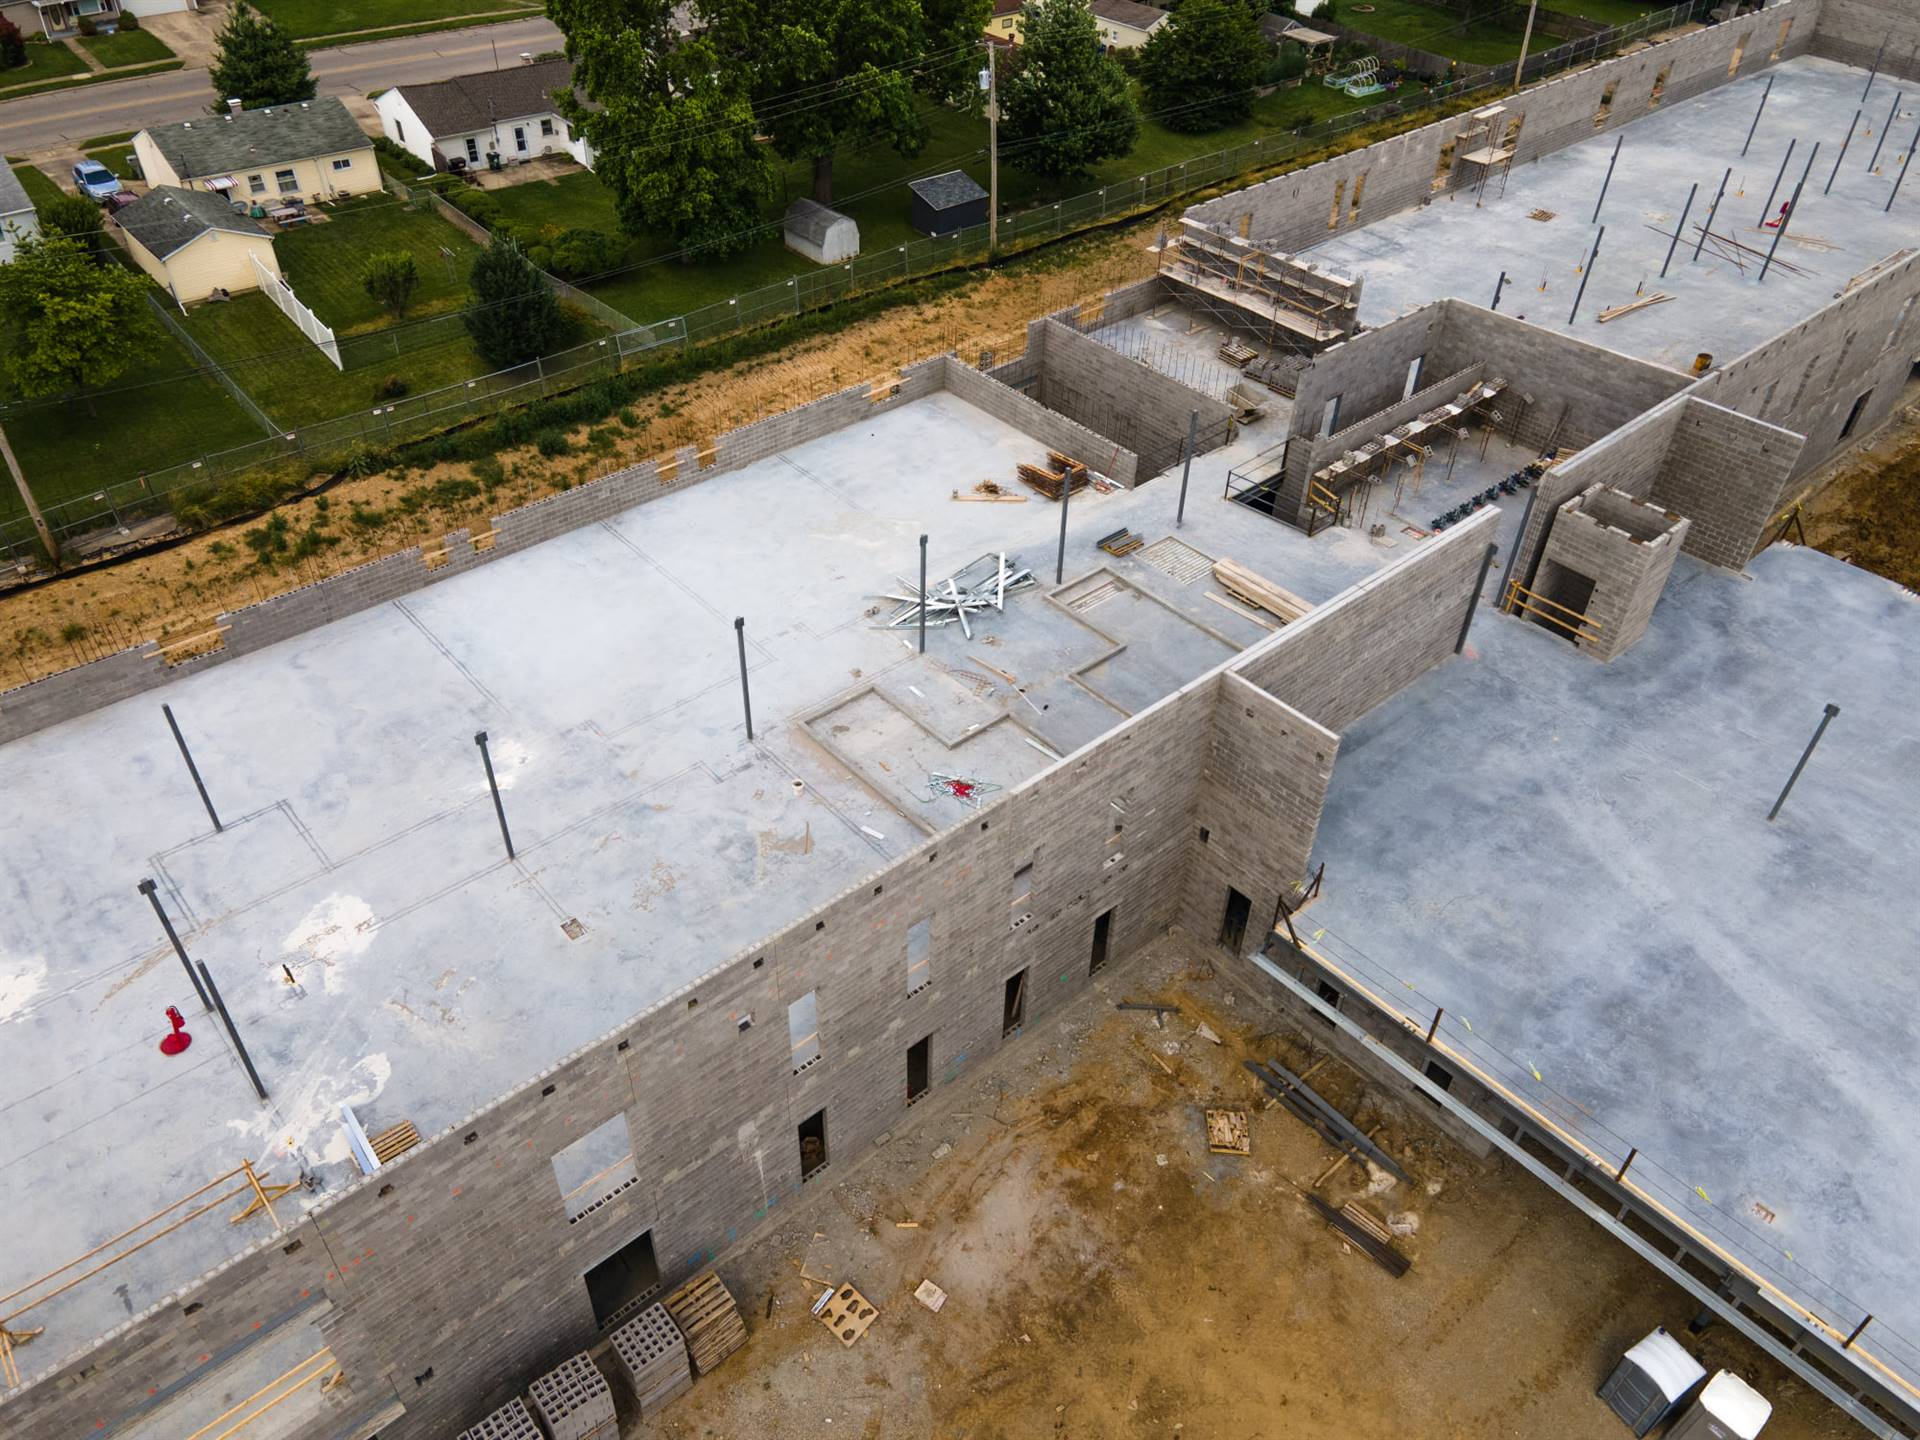 Fairborn Intermediate School View from June 27, 2021 photos from Mark Rickert Busy Bee Aerial Produc